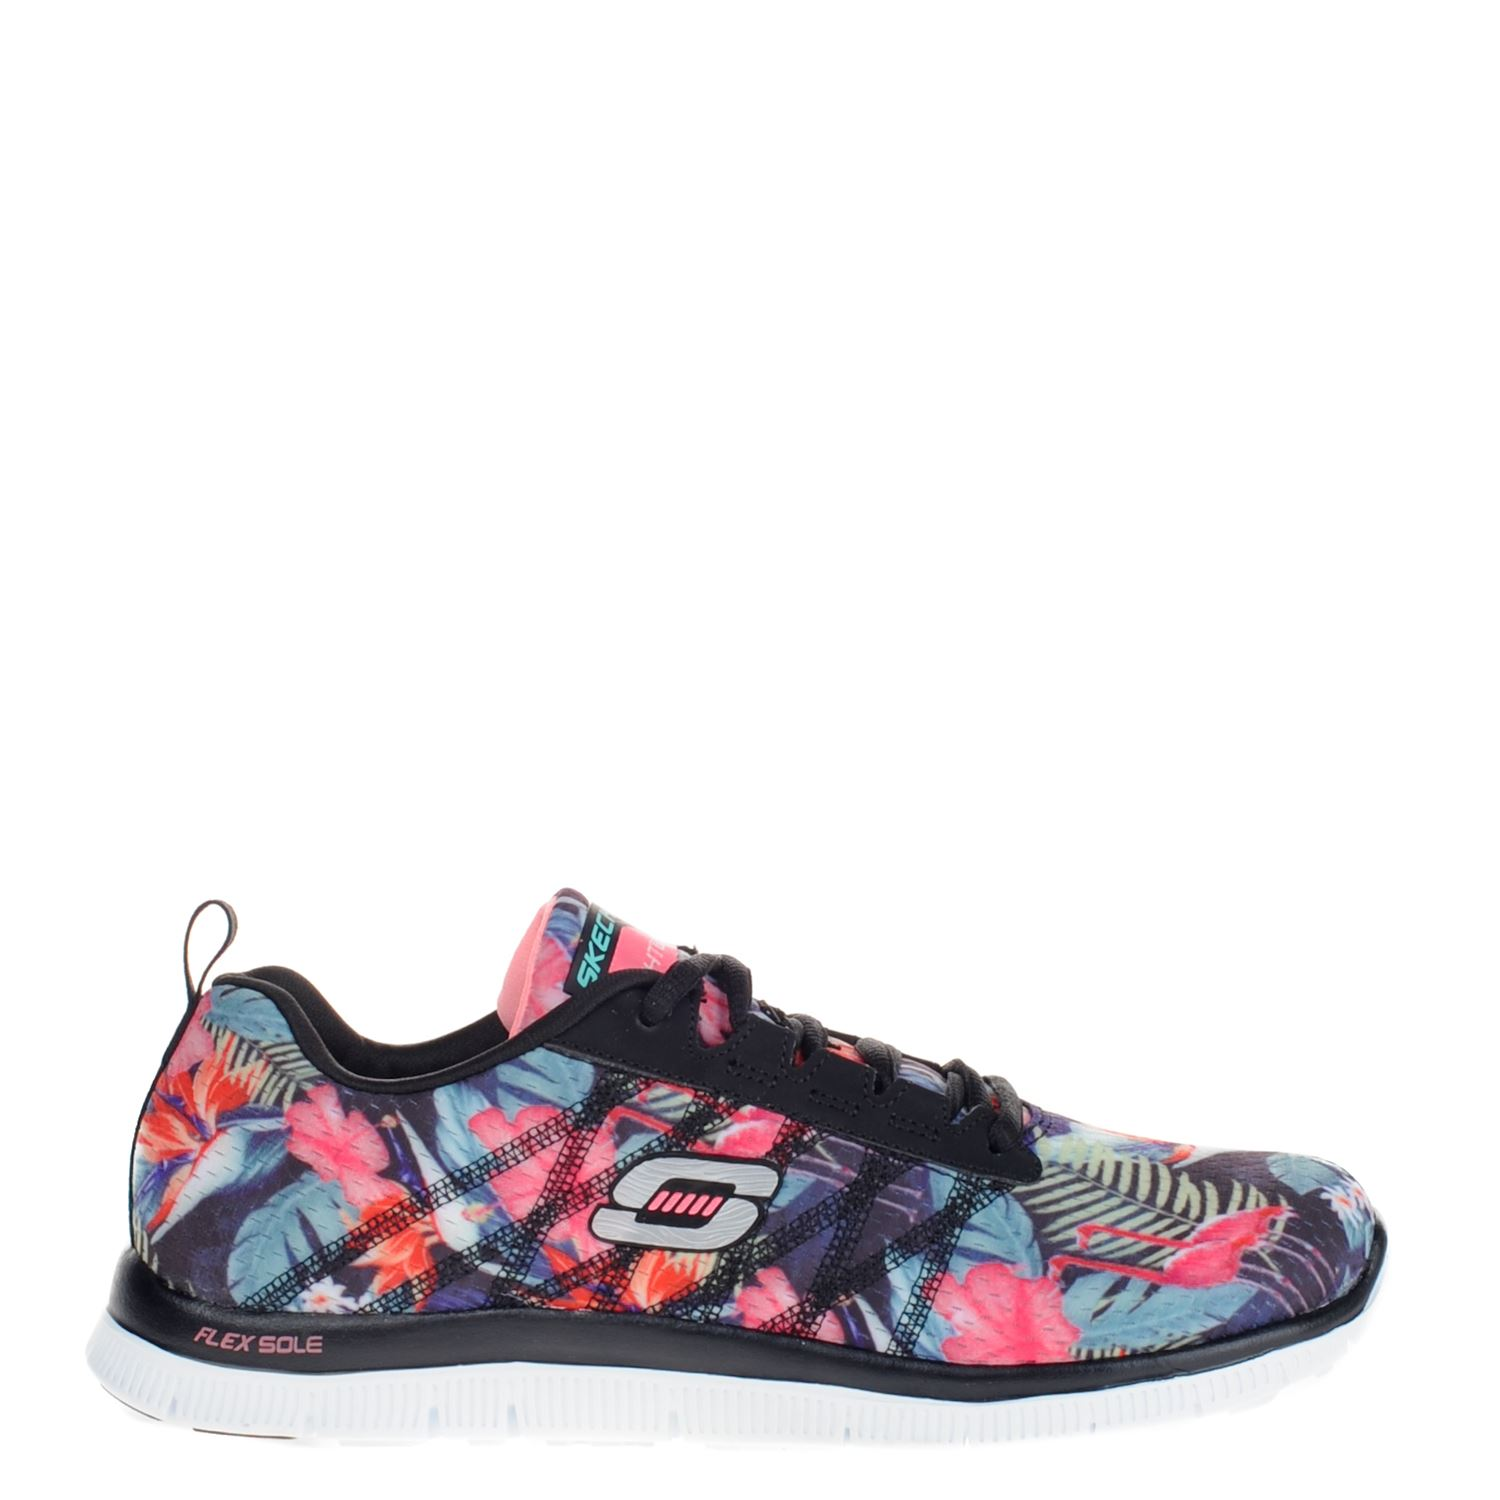 Skechers Dames Skechers Dames Lage Sneakers Zwart